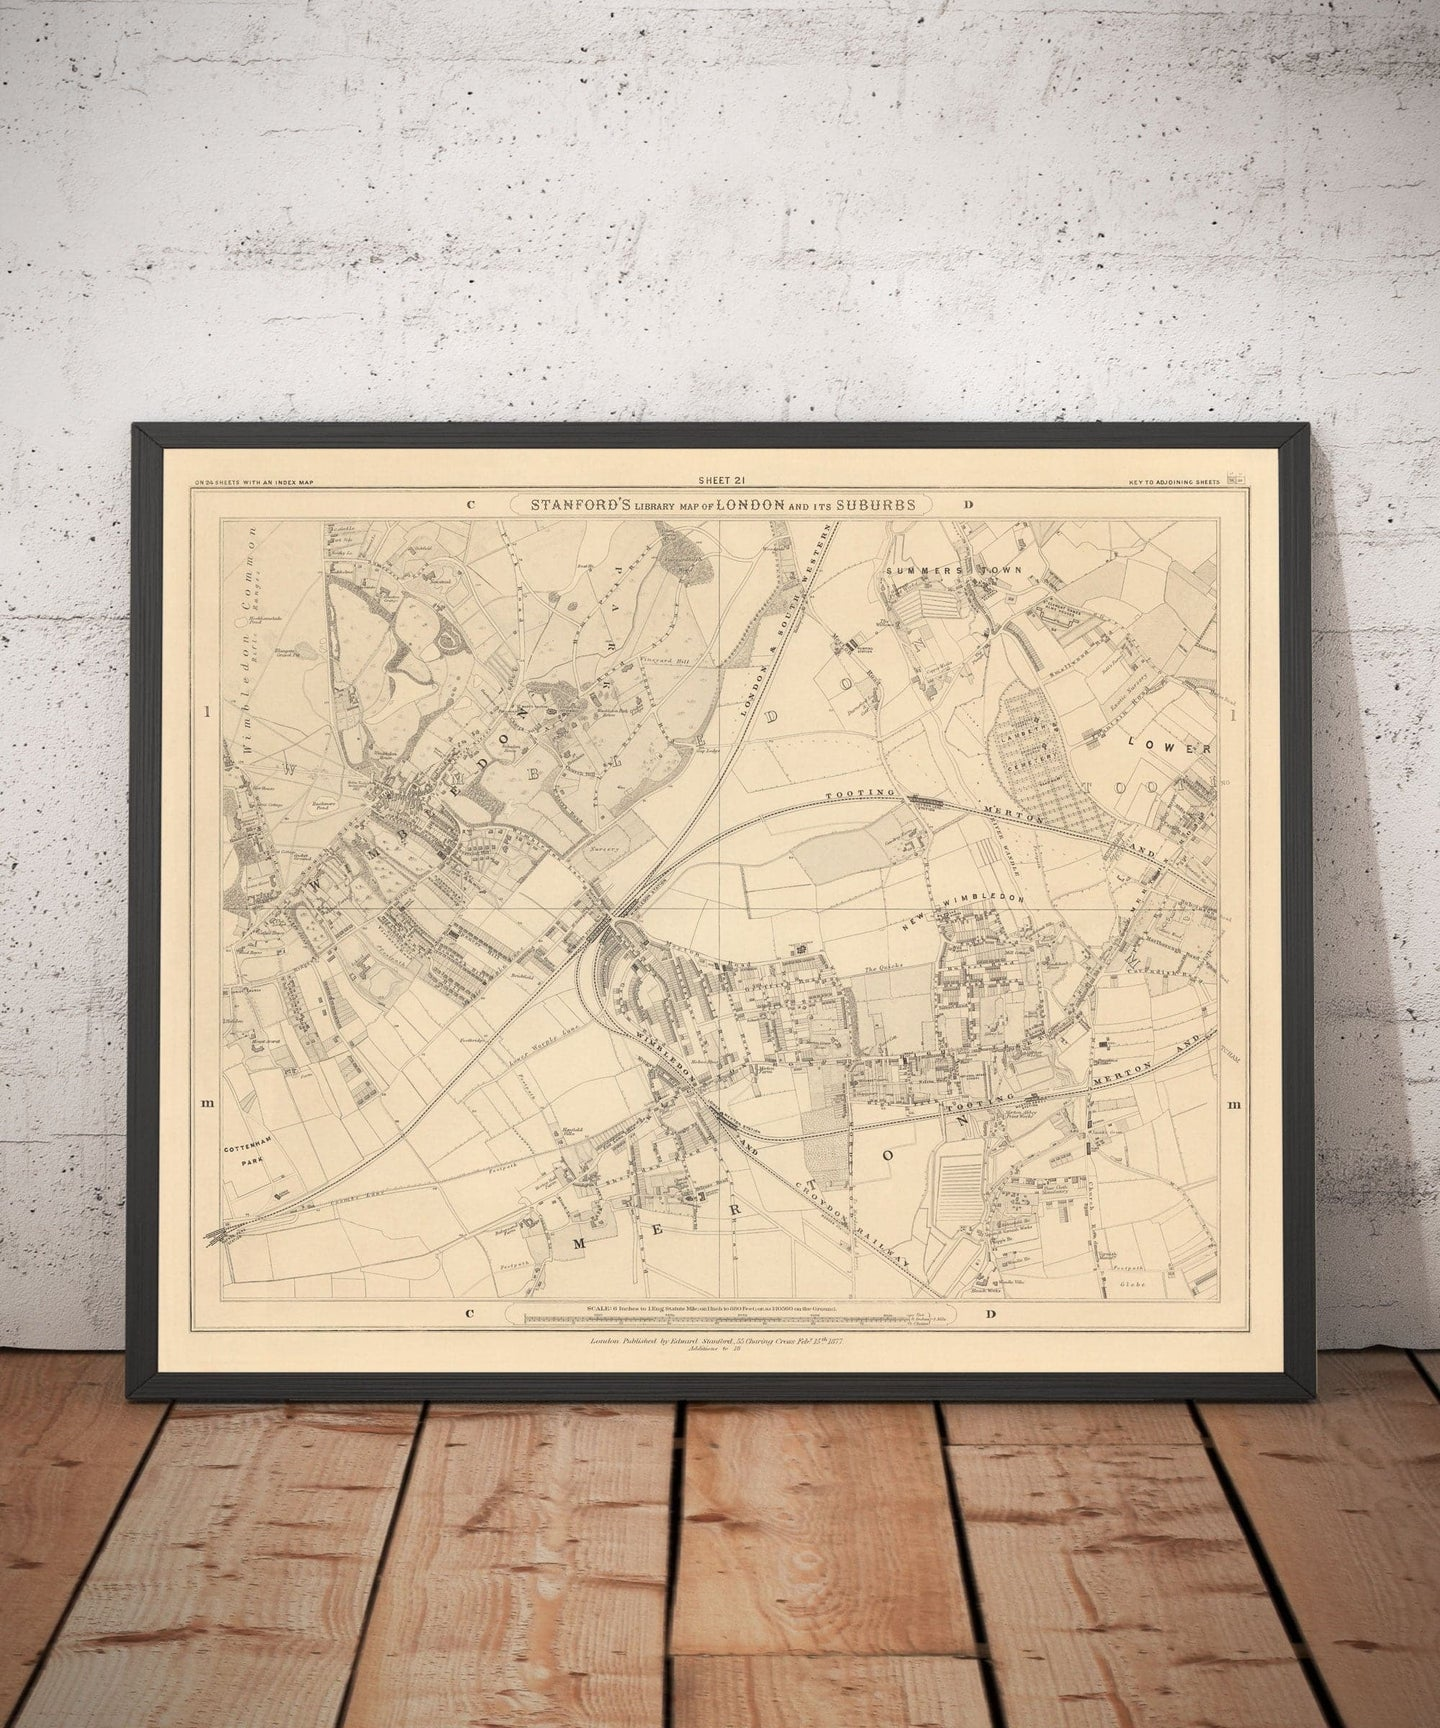 Old Map of South West London, 1862 by Edward Stanford - Wimbledon, Merton, Summerstown - Personalised Antique Christmas Gift - Framed, Unframed